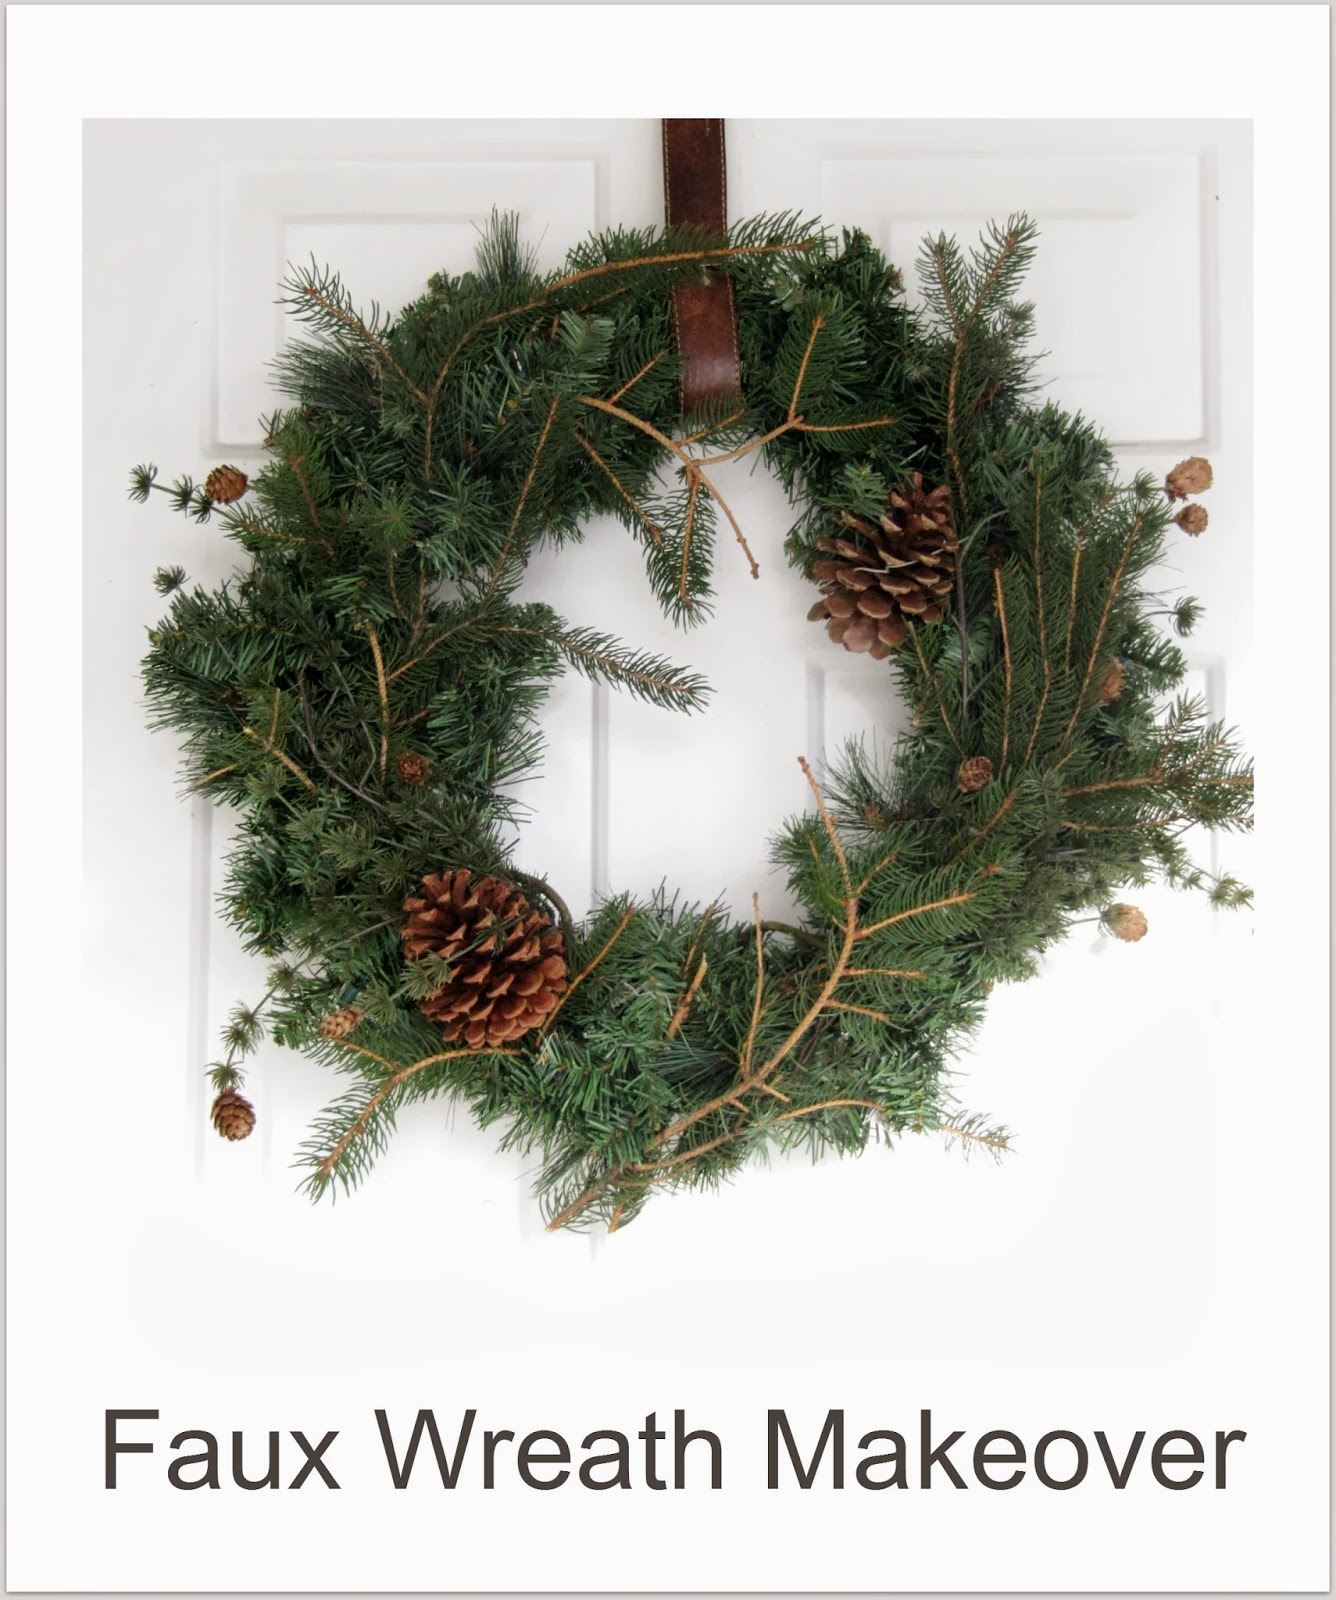 http://thewickerhouse.blogspot.com/2012/12/my-christmas-porch-wreath-makeover.html